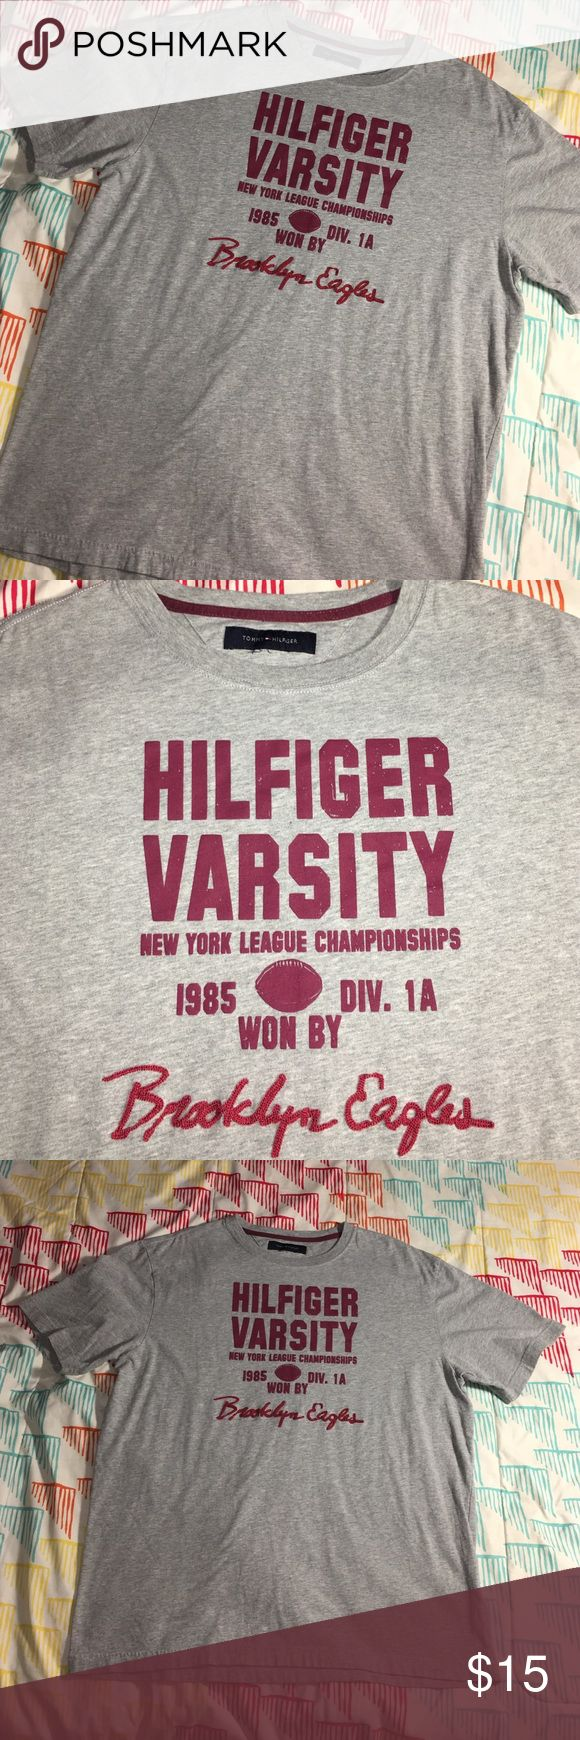 Tommy Hilfiger Varsity Brooklyn Eagles Shirt Size Men's large - condition excellent Tommy Hilfiger Shirts Tees - Short Sleeve